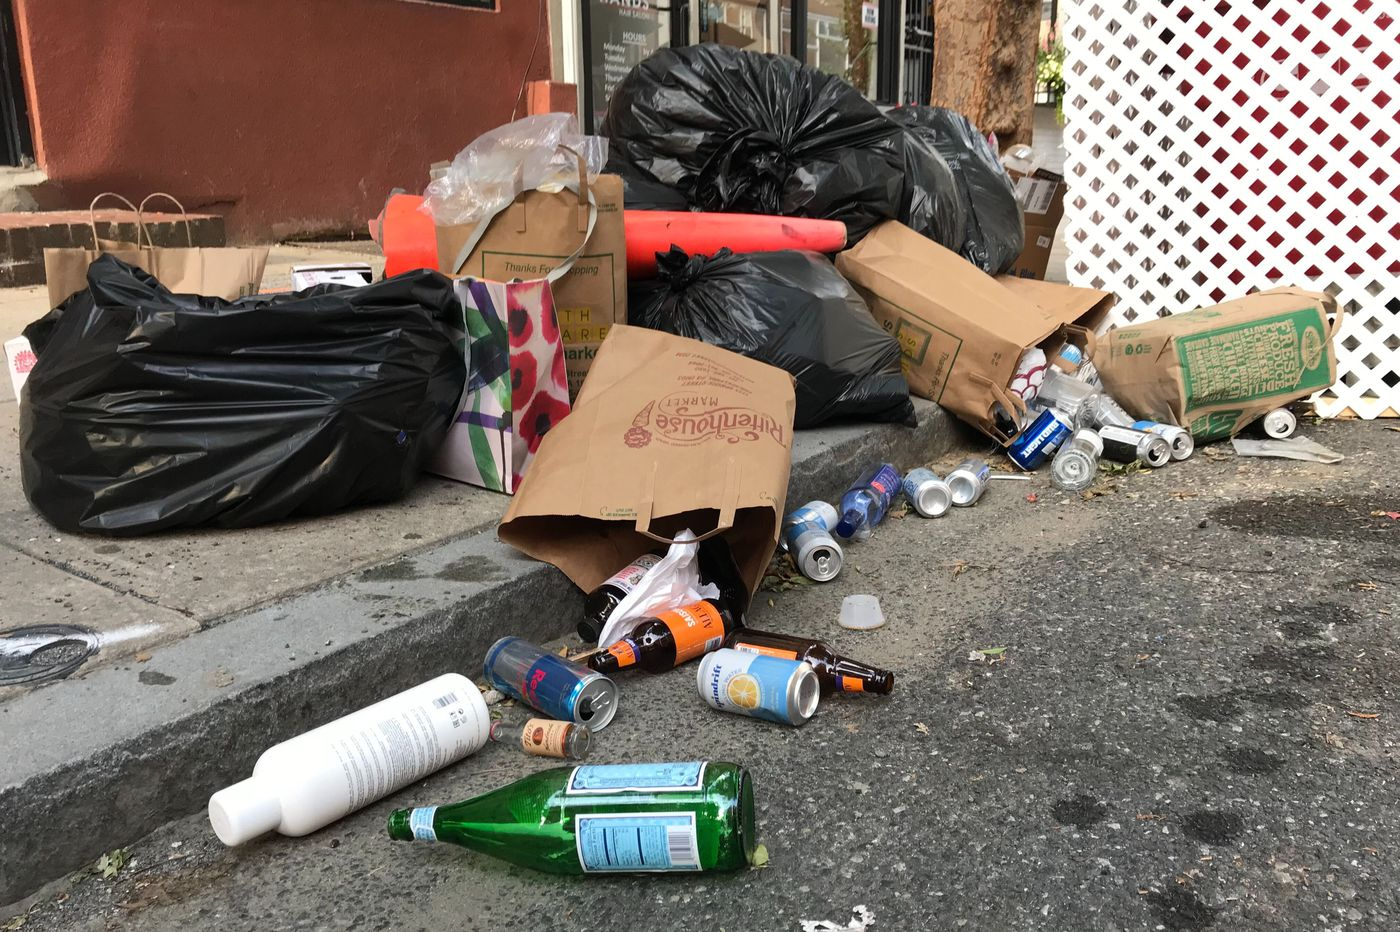 Philly residents, this is why your trash pickup is so late | Opinion